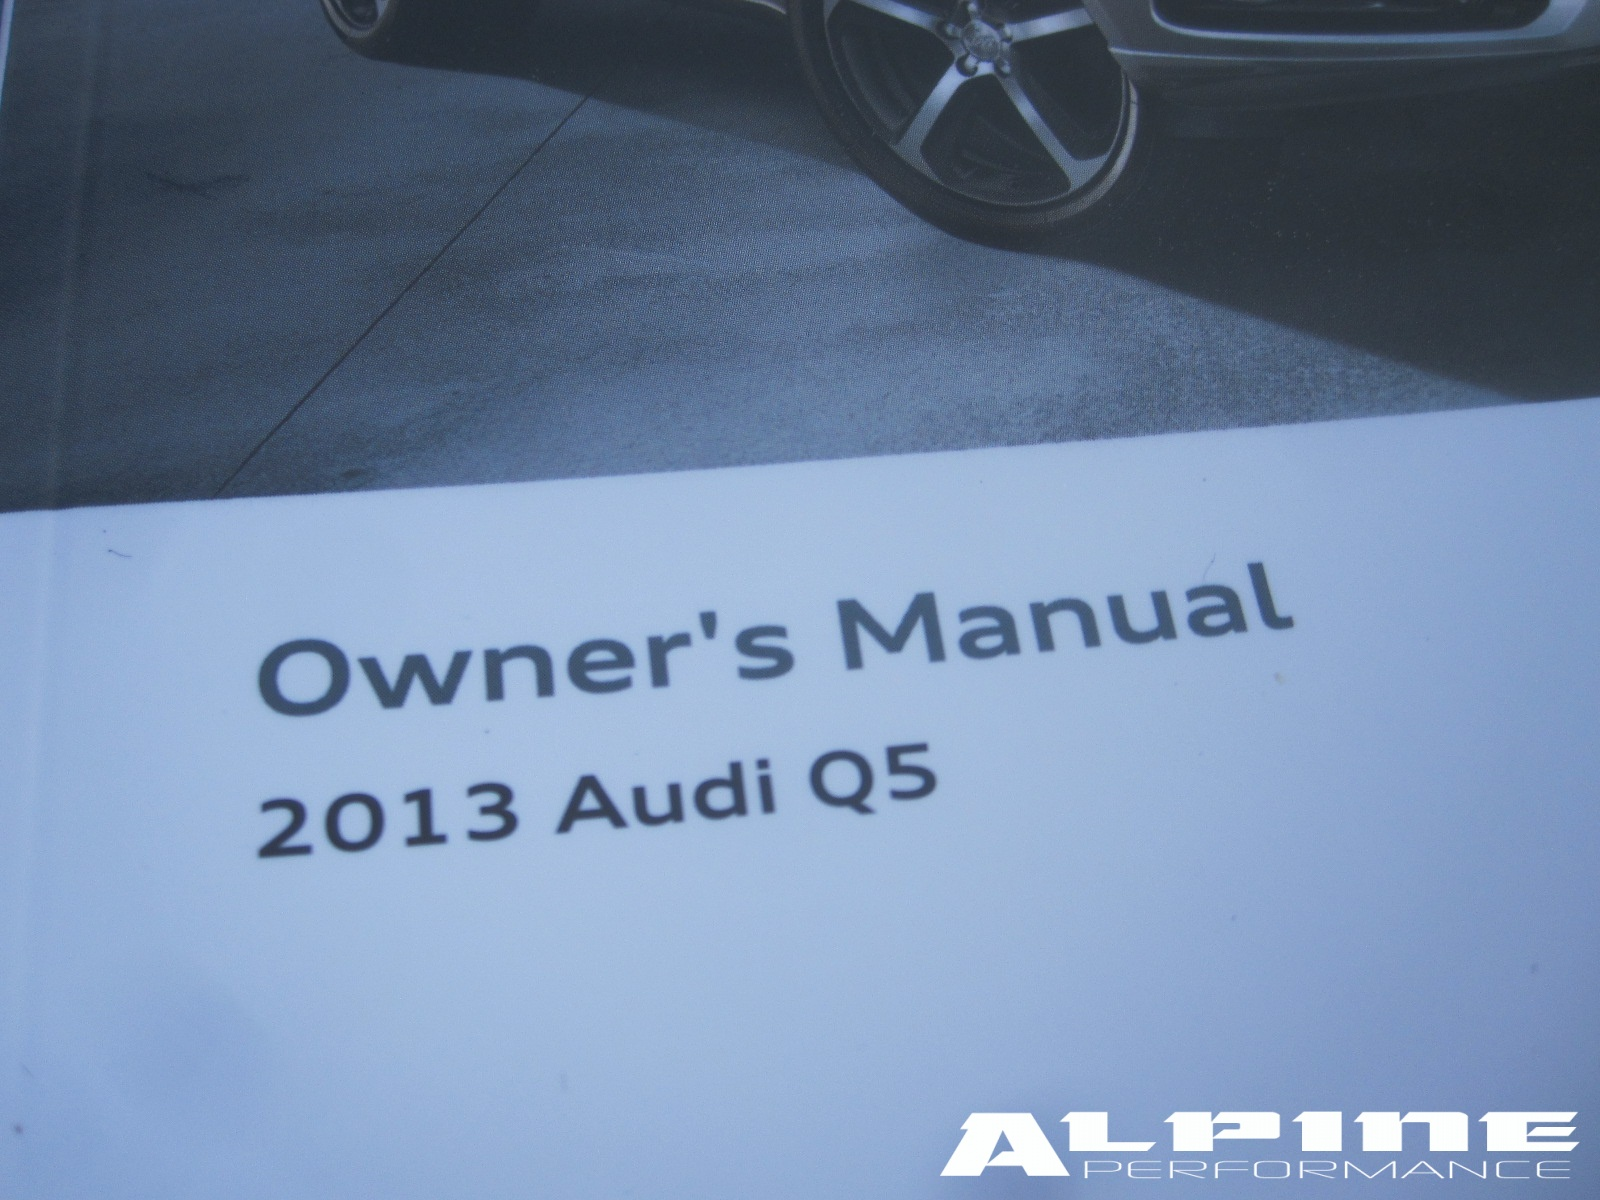 origianal audi q5 owners manual set books case manuals guide owner rh alpinediscountparts com audi q5 owners manual 2014 audi q5 owners manual 2018